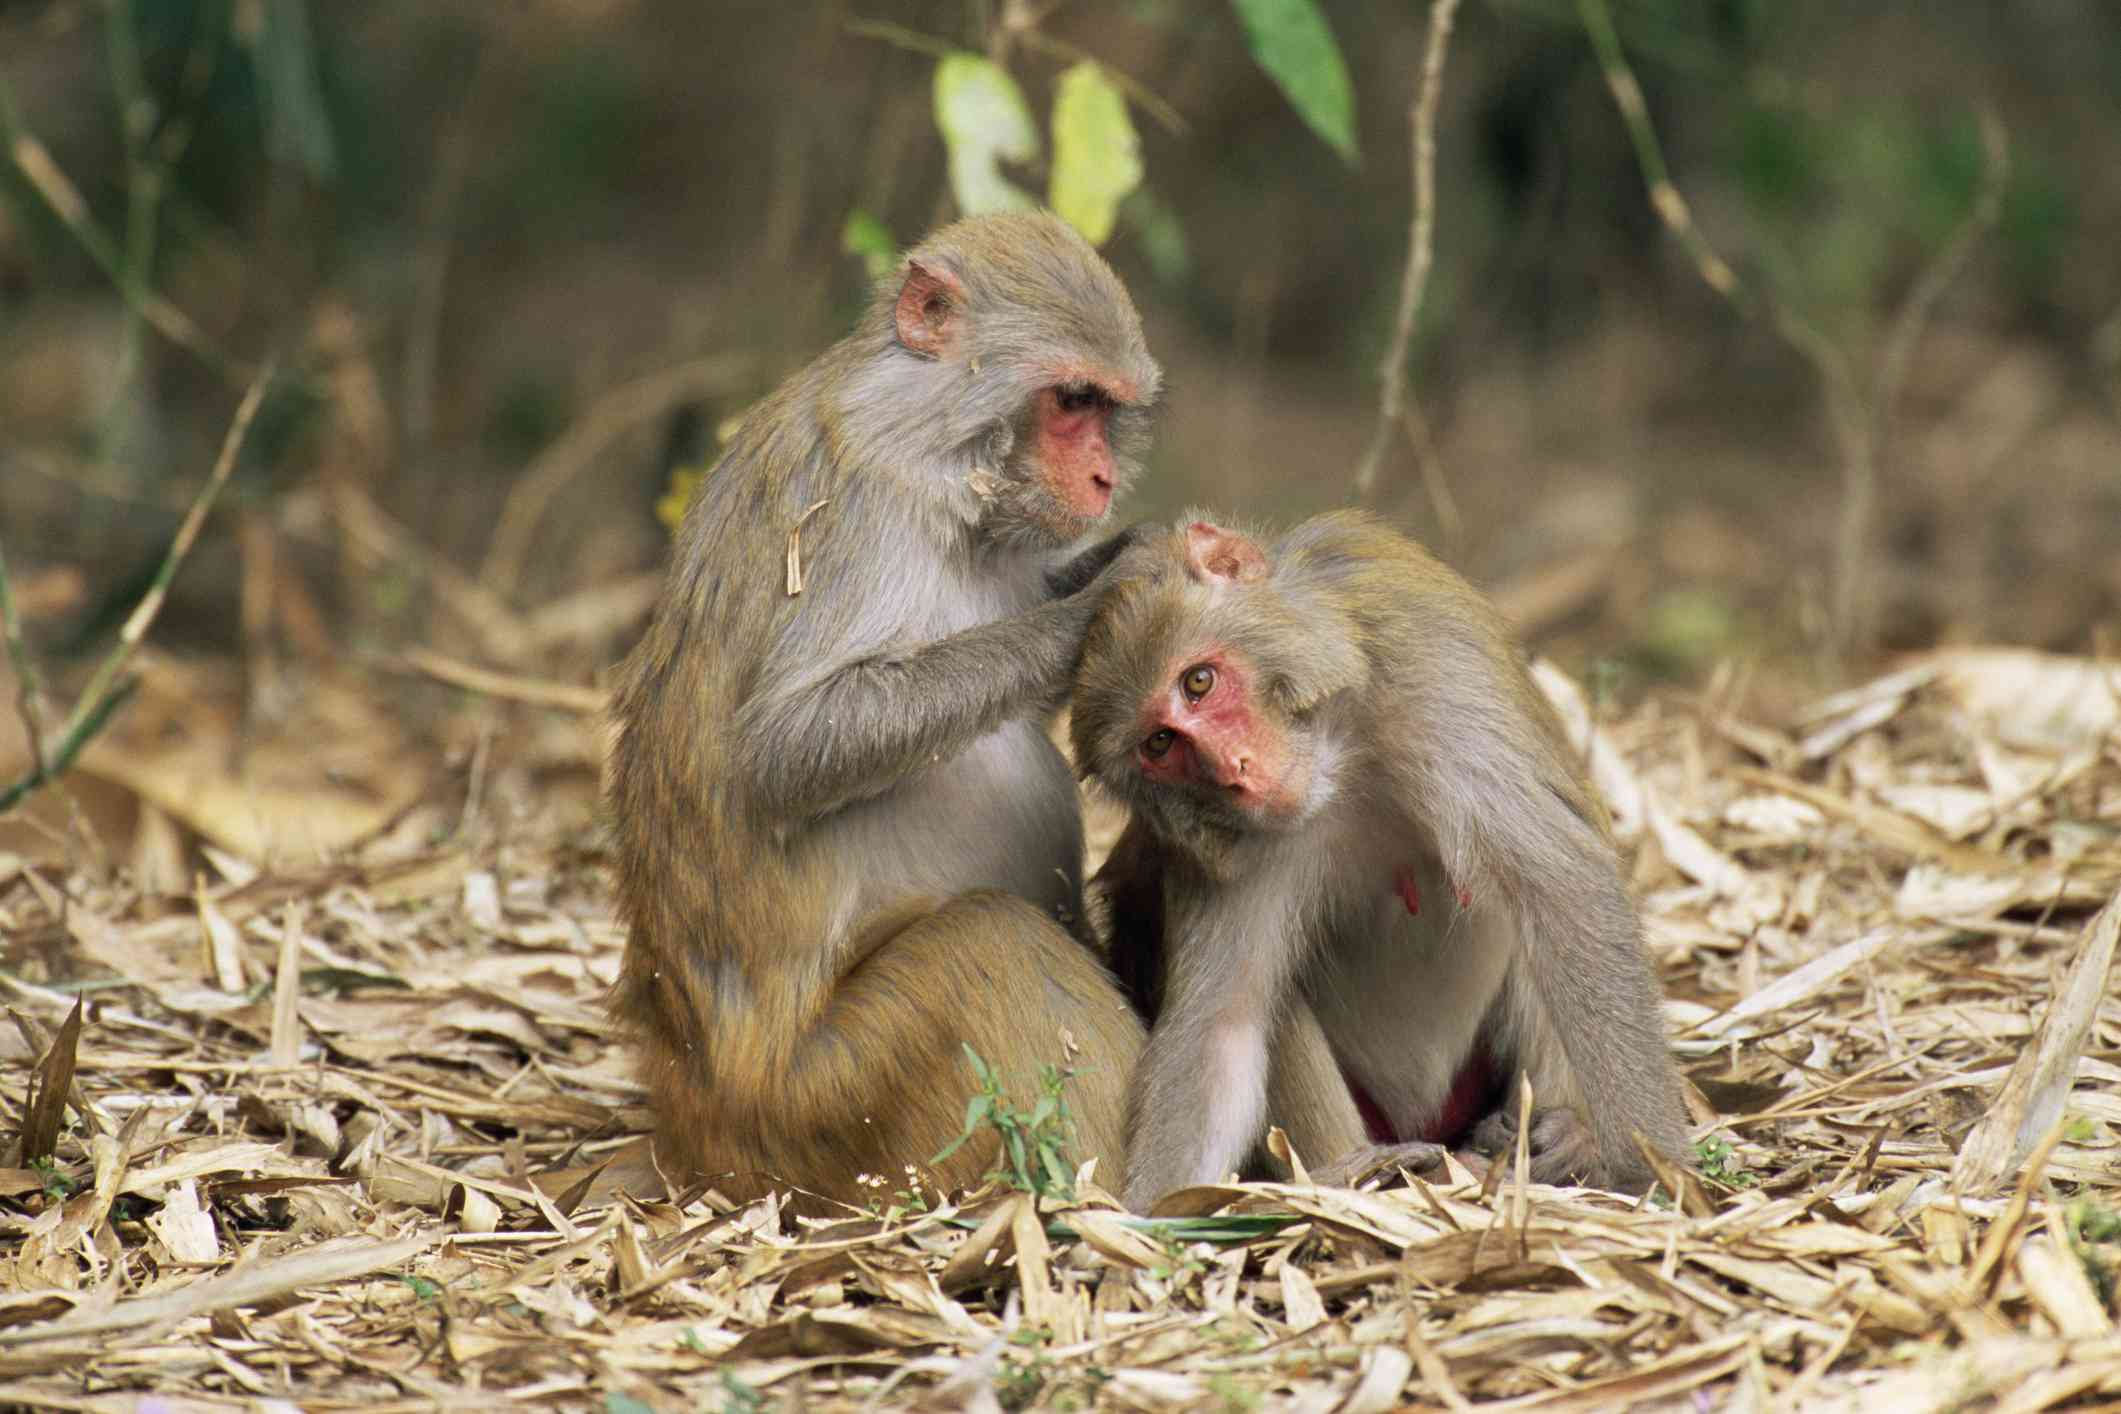 a pair of rhesus macaques grooming each other